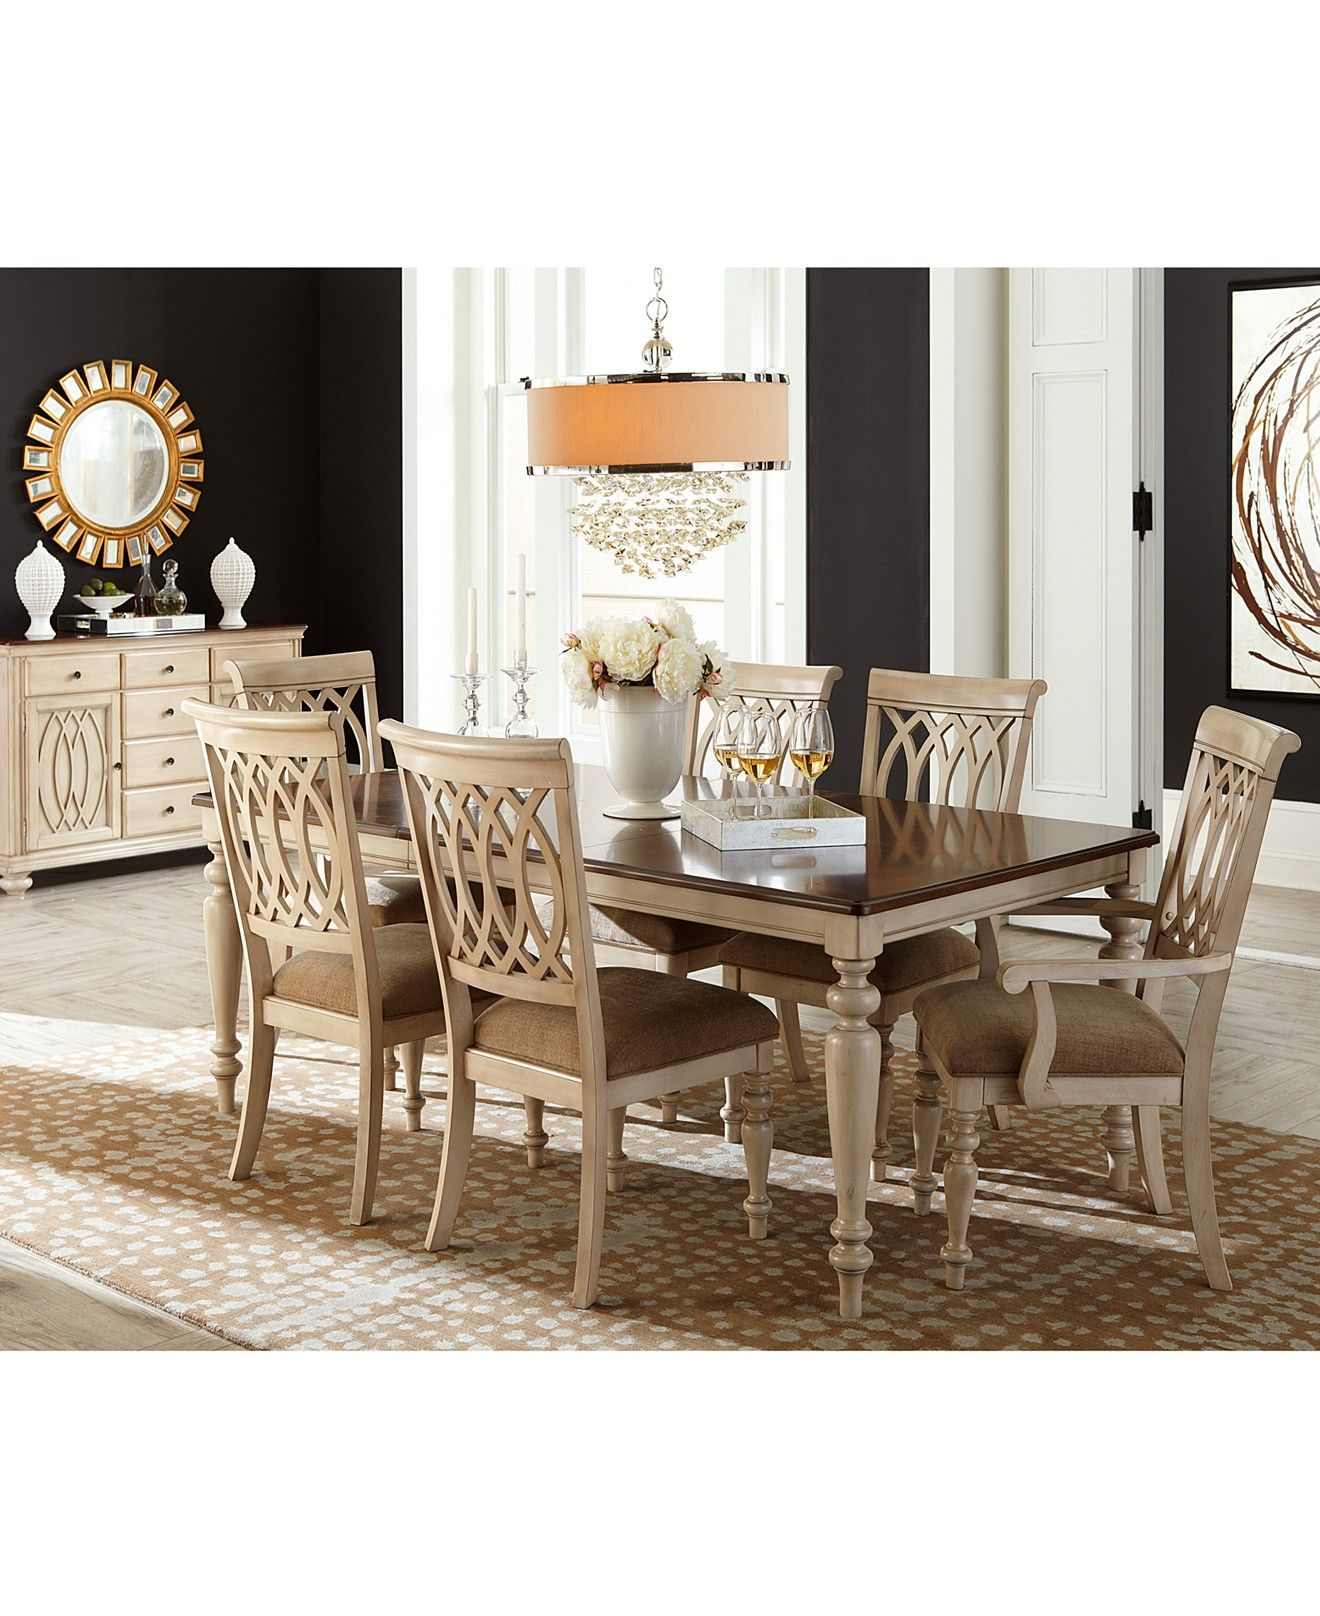 Dovewood Dining Room Furniture Collection Dining Room Collections Furniture Macy S Dining Room Furniture Collections Dining Room Furniture Furniture